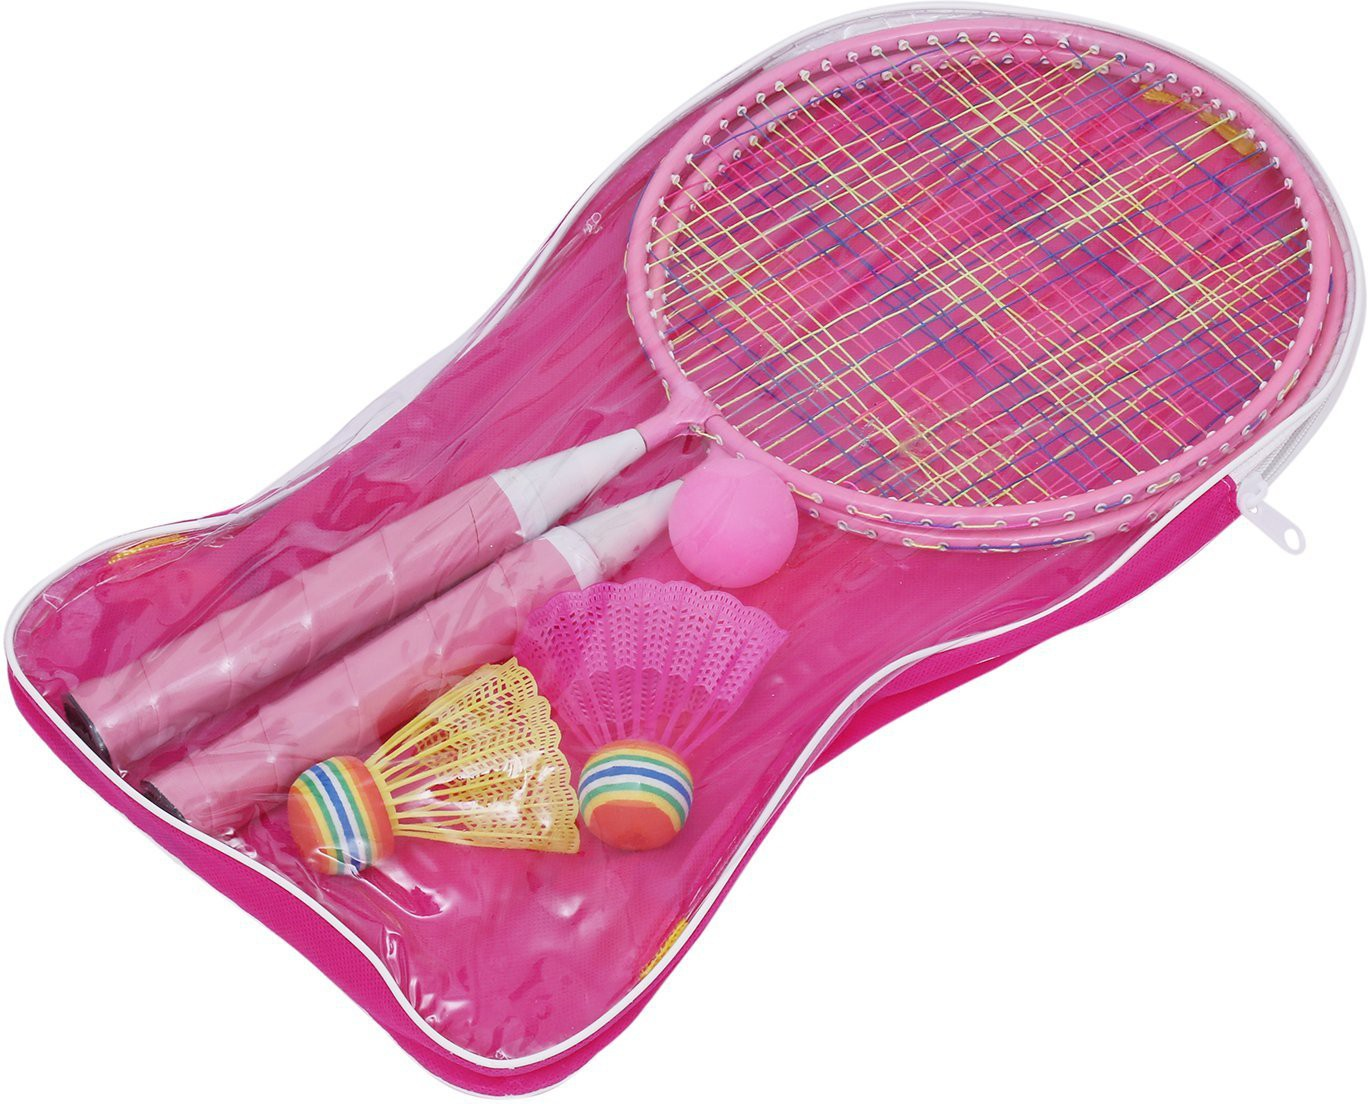 Leosportz Durable Kids play Mini Badminton racket Set with 2 Shuttles Pink Strung Tennis Racquet Pack of: 2, 200 g